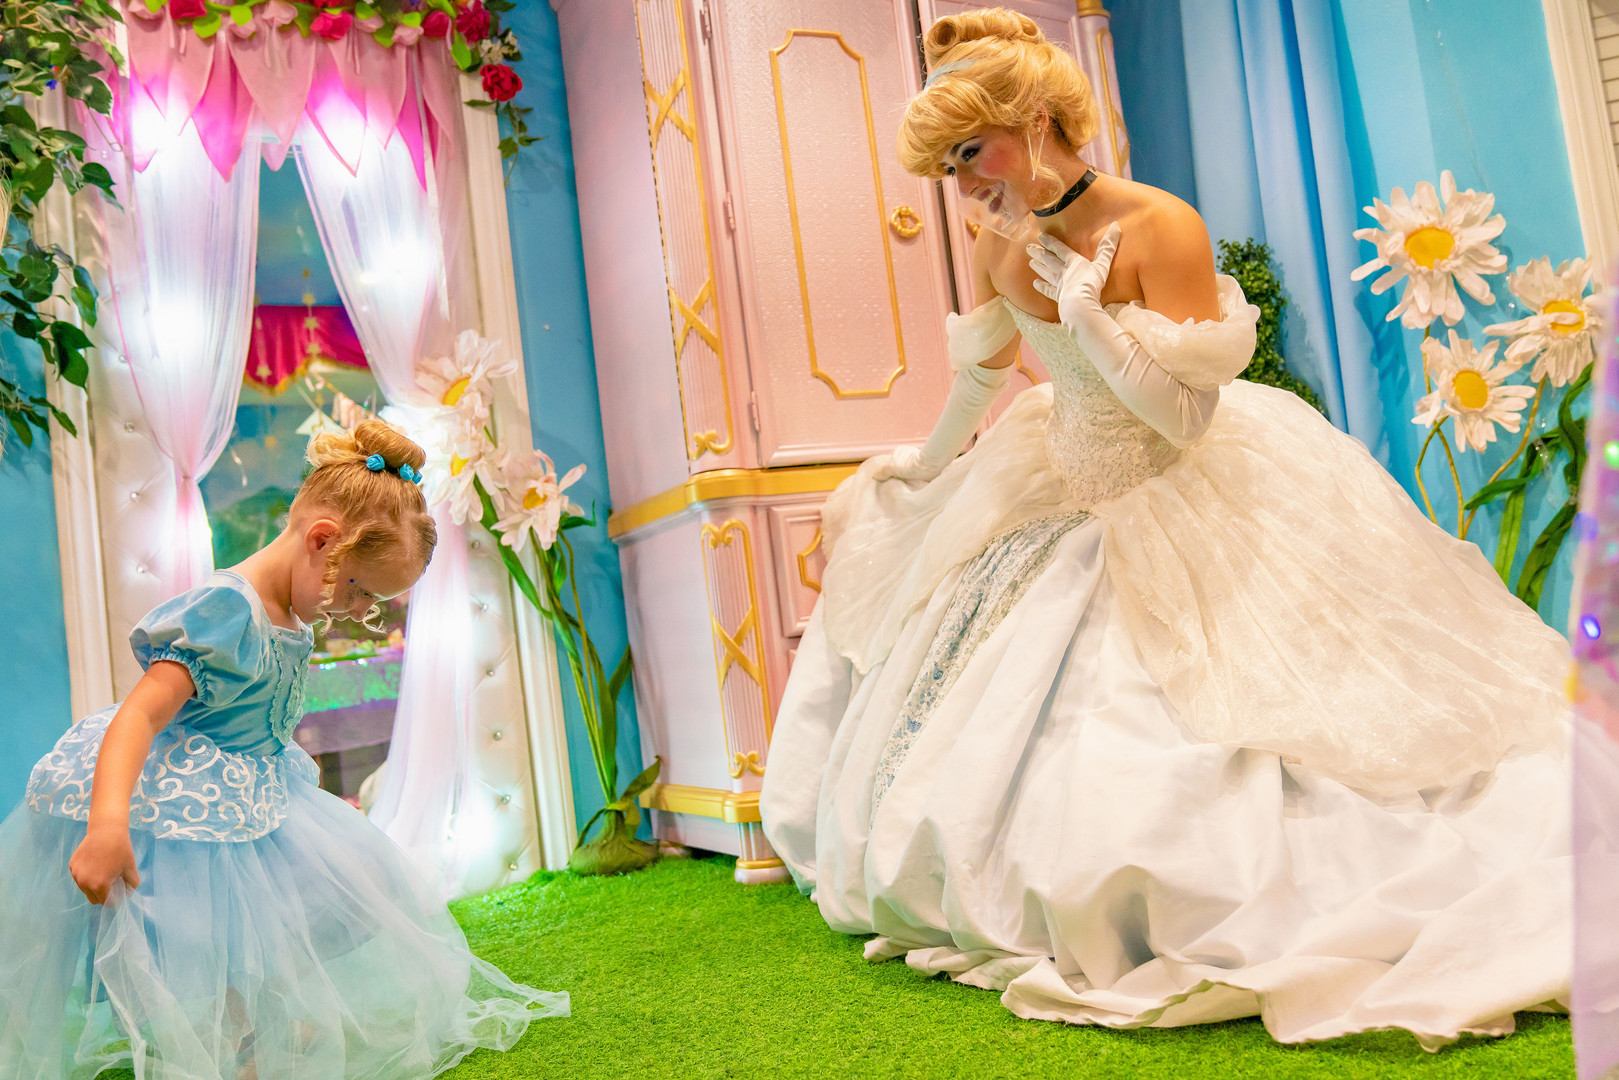 Princess makeover and tea party